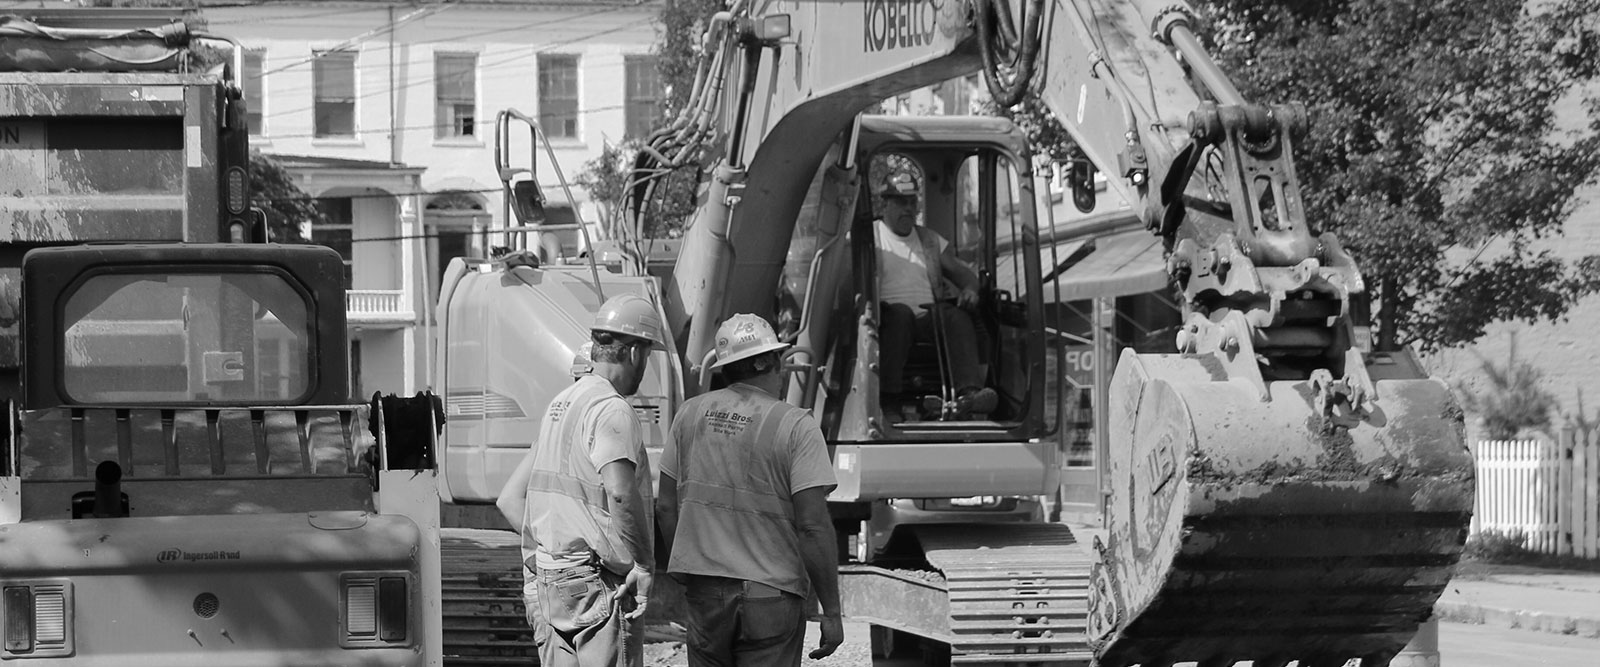 Luizzi employees in hard hats with Excavator